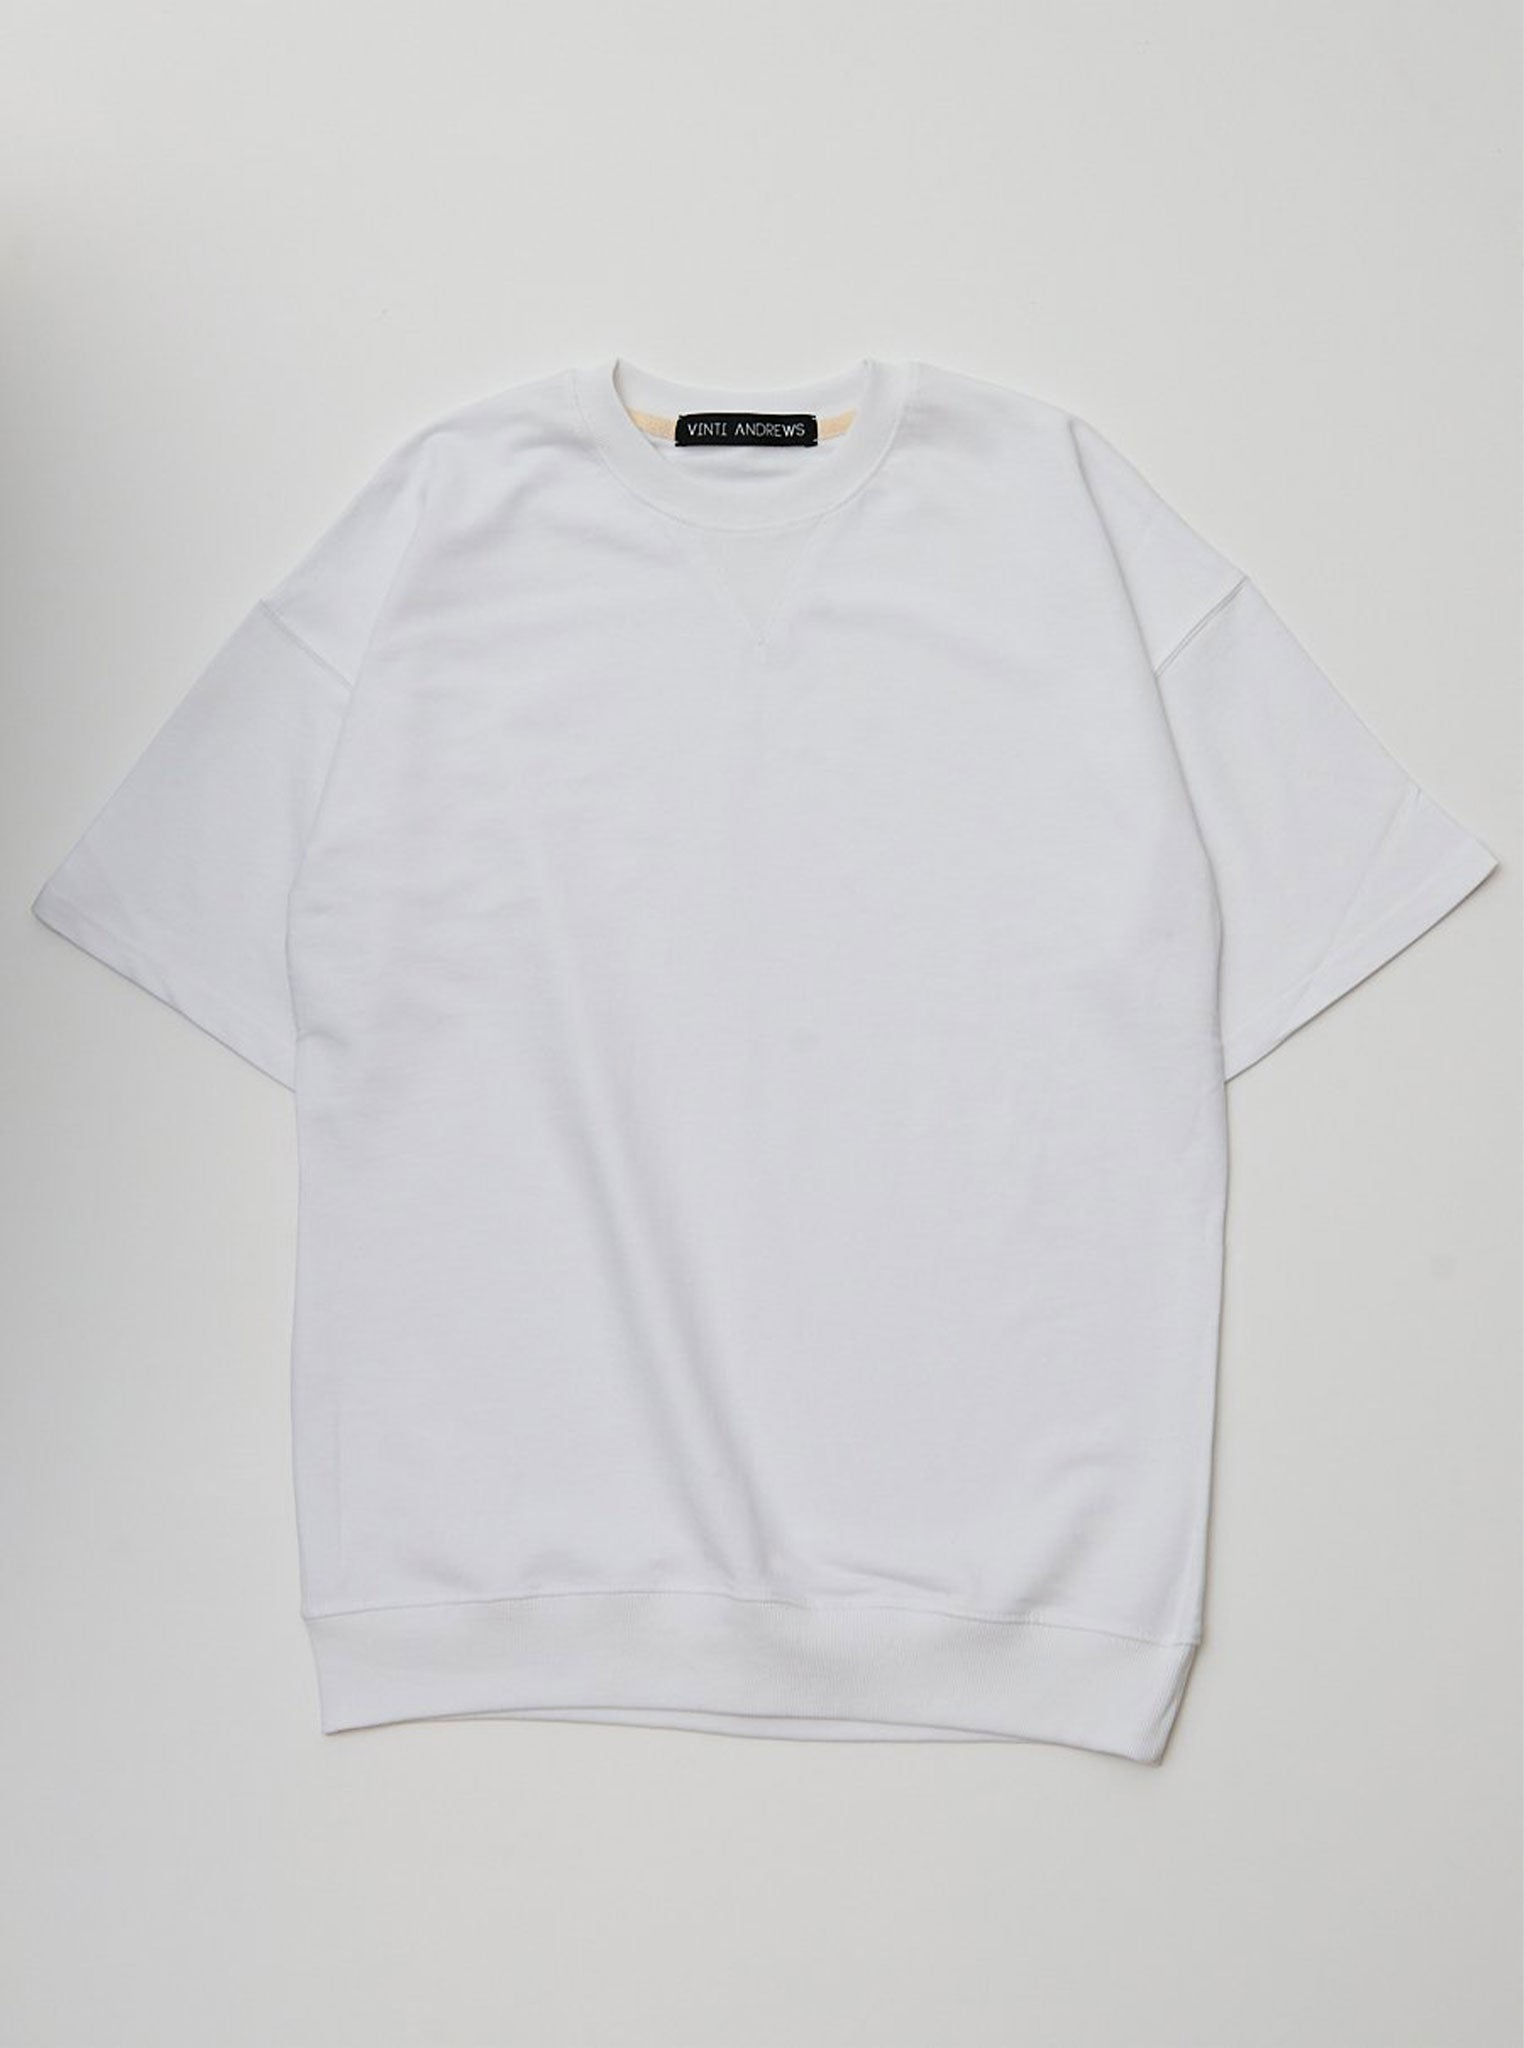 Vinti Andrews Short Sleeves Sweatshirt White